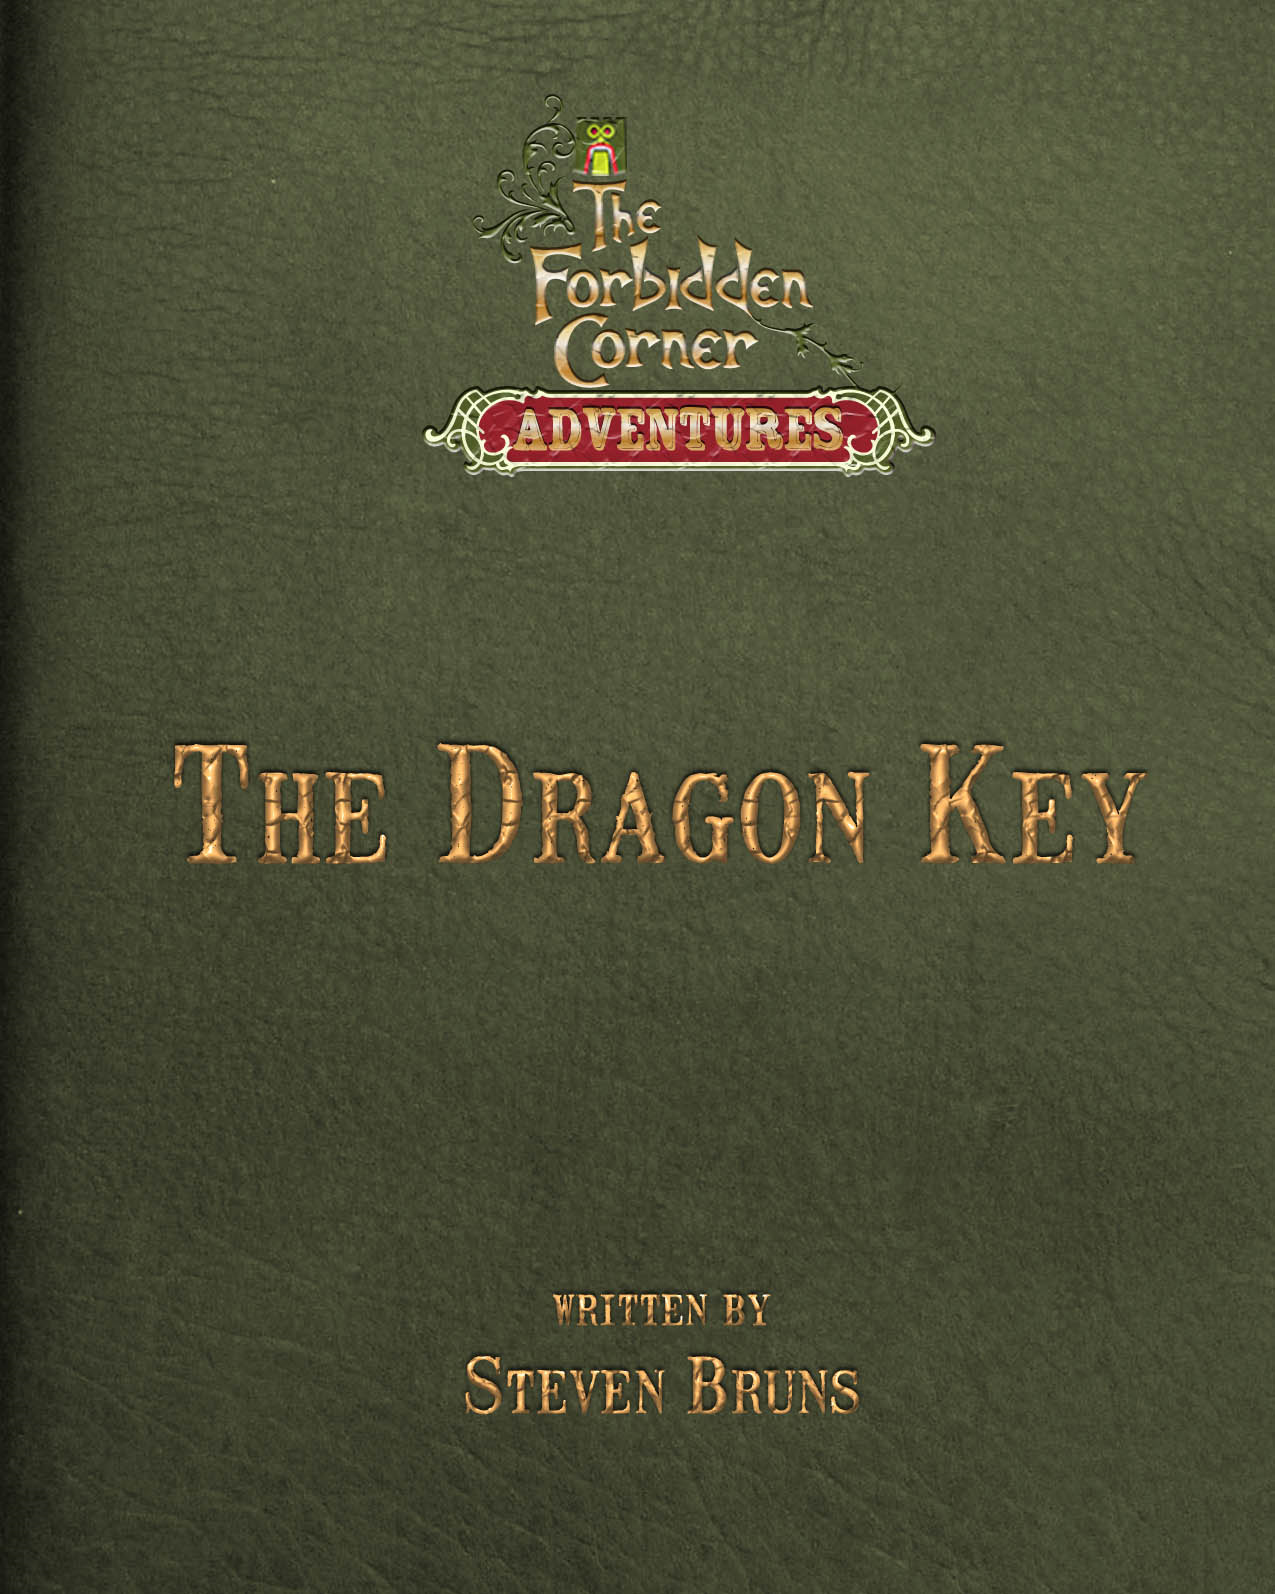 The Dragon Key